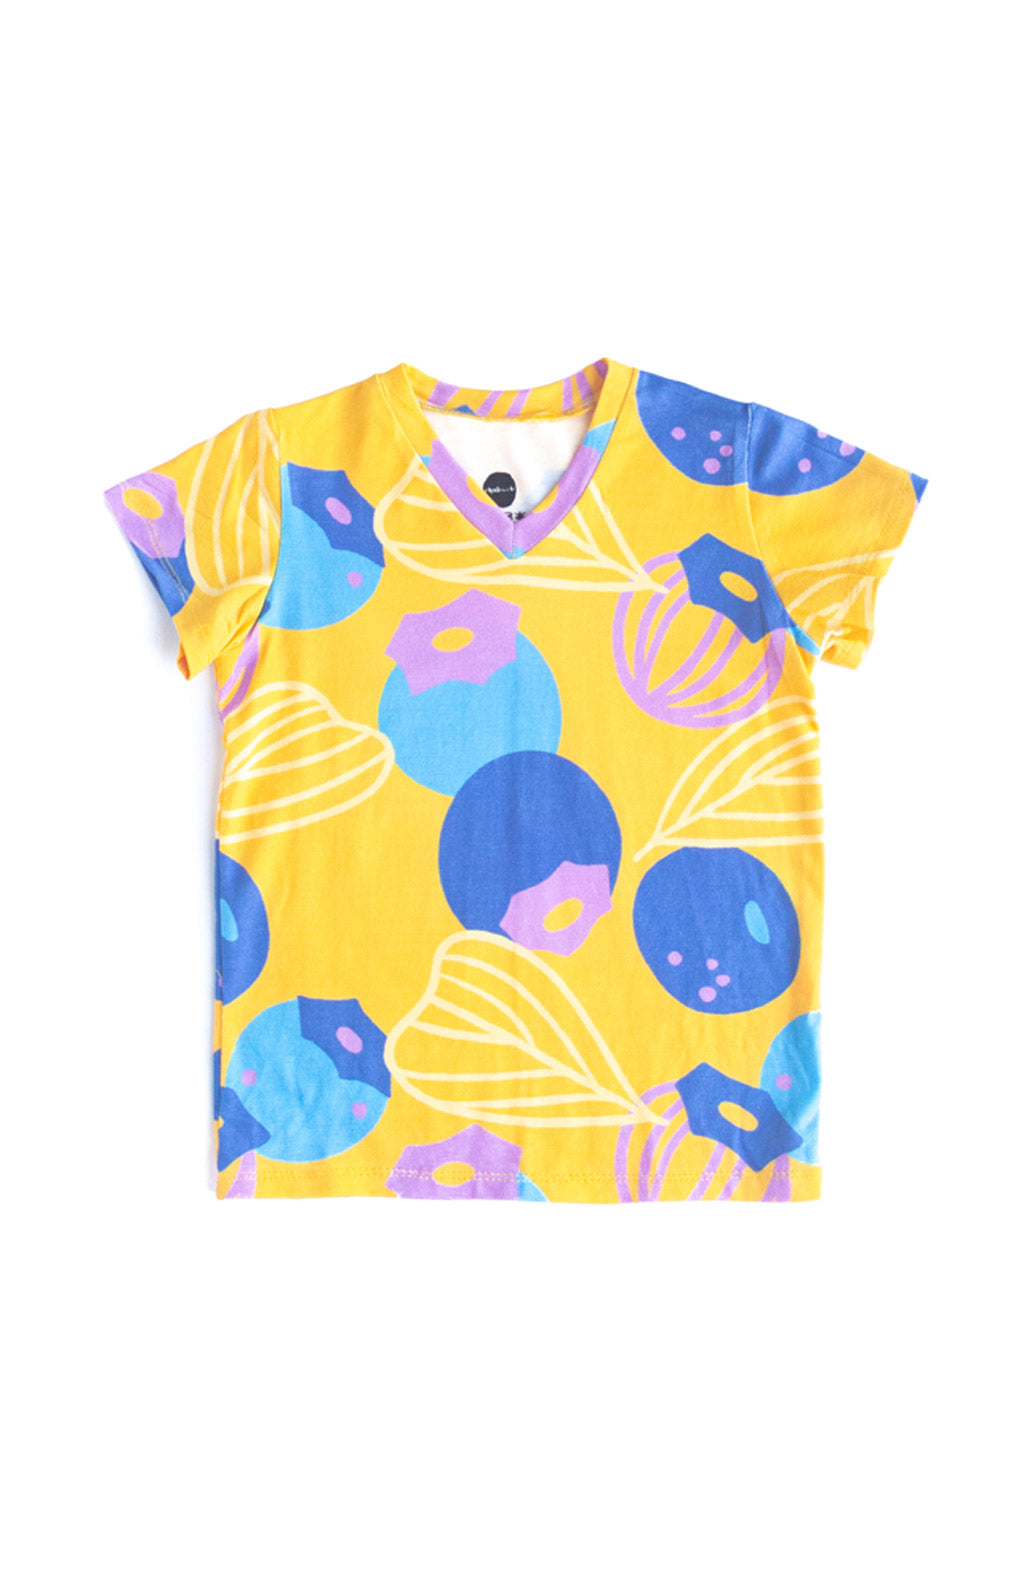 Great Berries Kids Tee in Marigold